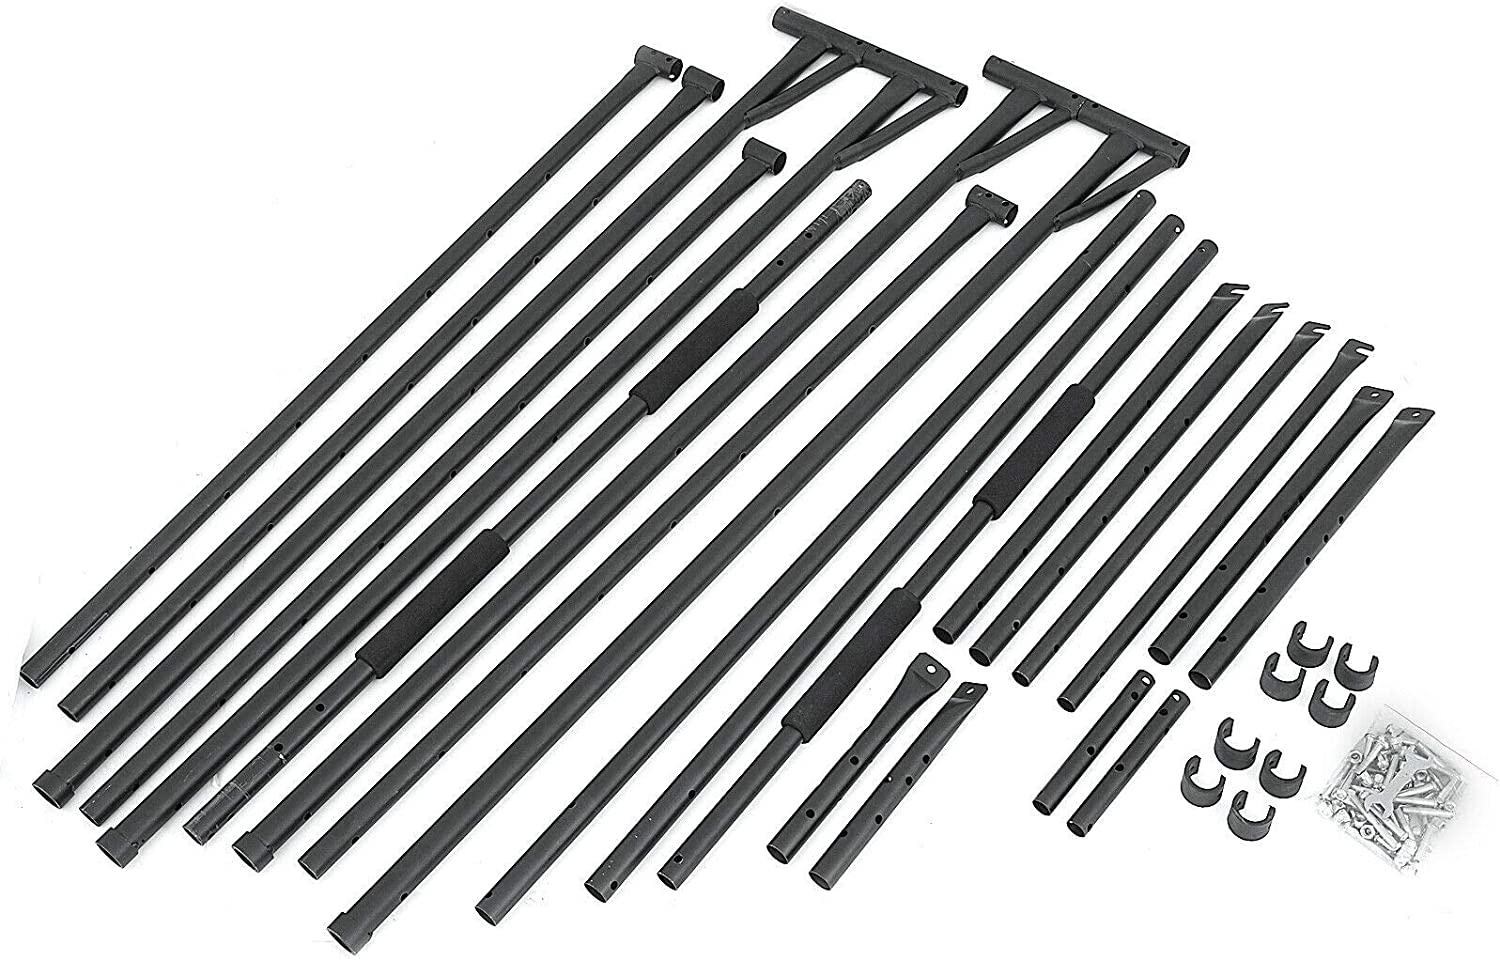 Pull up Bar Tool Kit Bodybuilding Fitness Gym Weight Lifting Dip Stand Pushup Home Gym Sports Outdoor Fitness Exercise Strength Training Equipment Chin up Tower Station Steel Rubber Collodion Solid